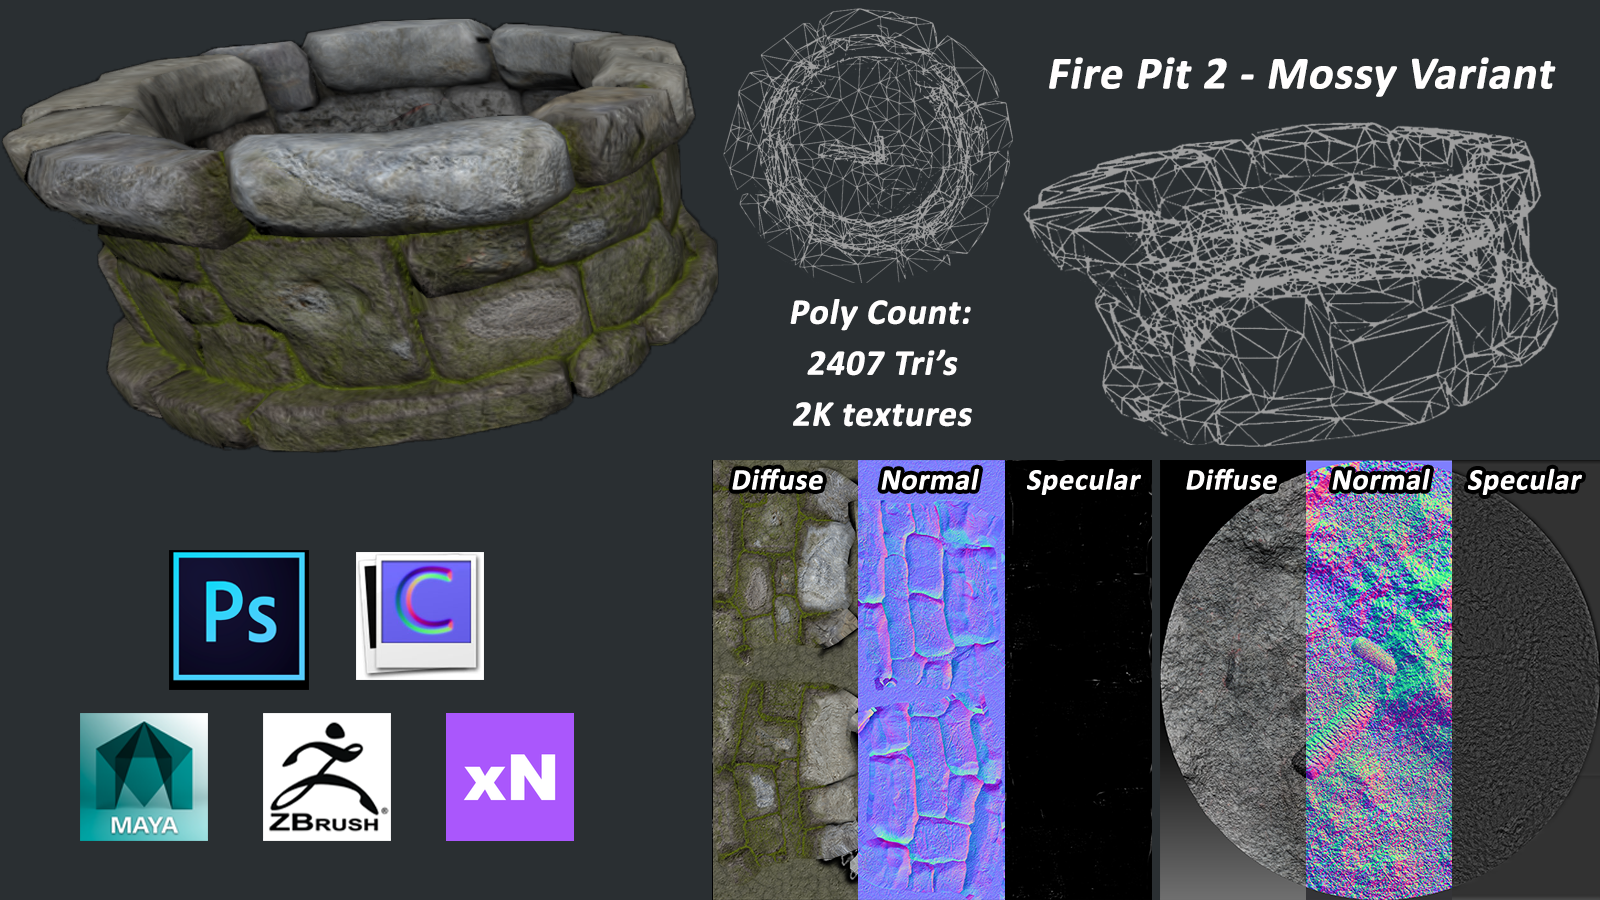 Fire Pit 2: Mossy